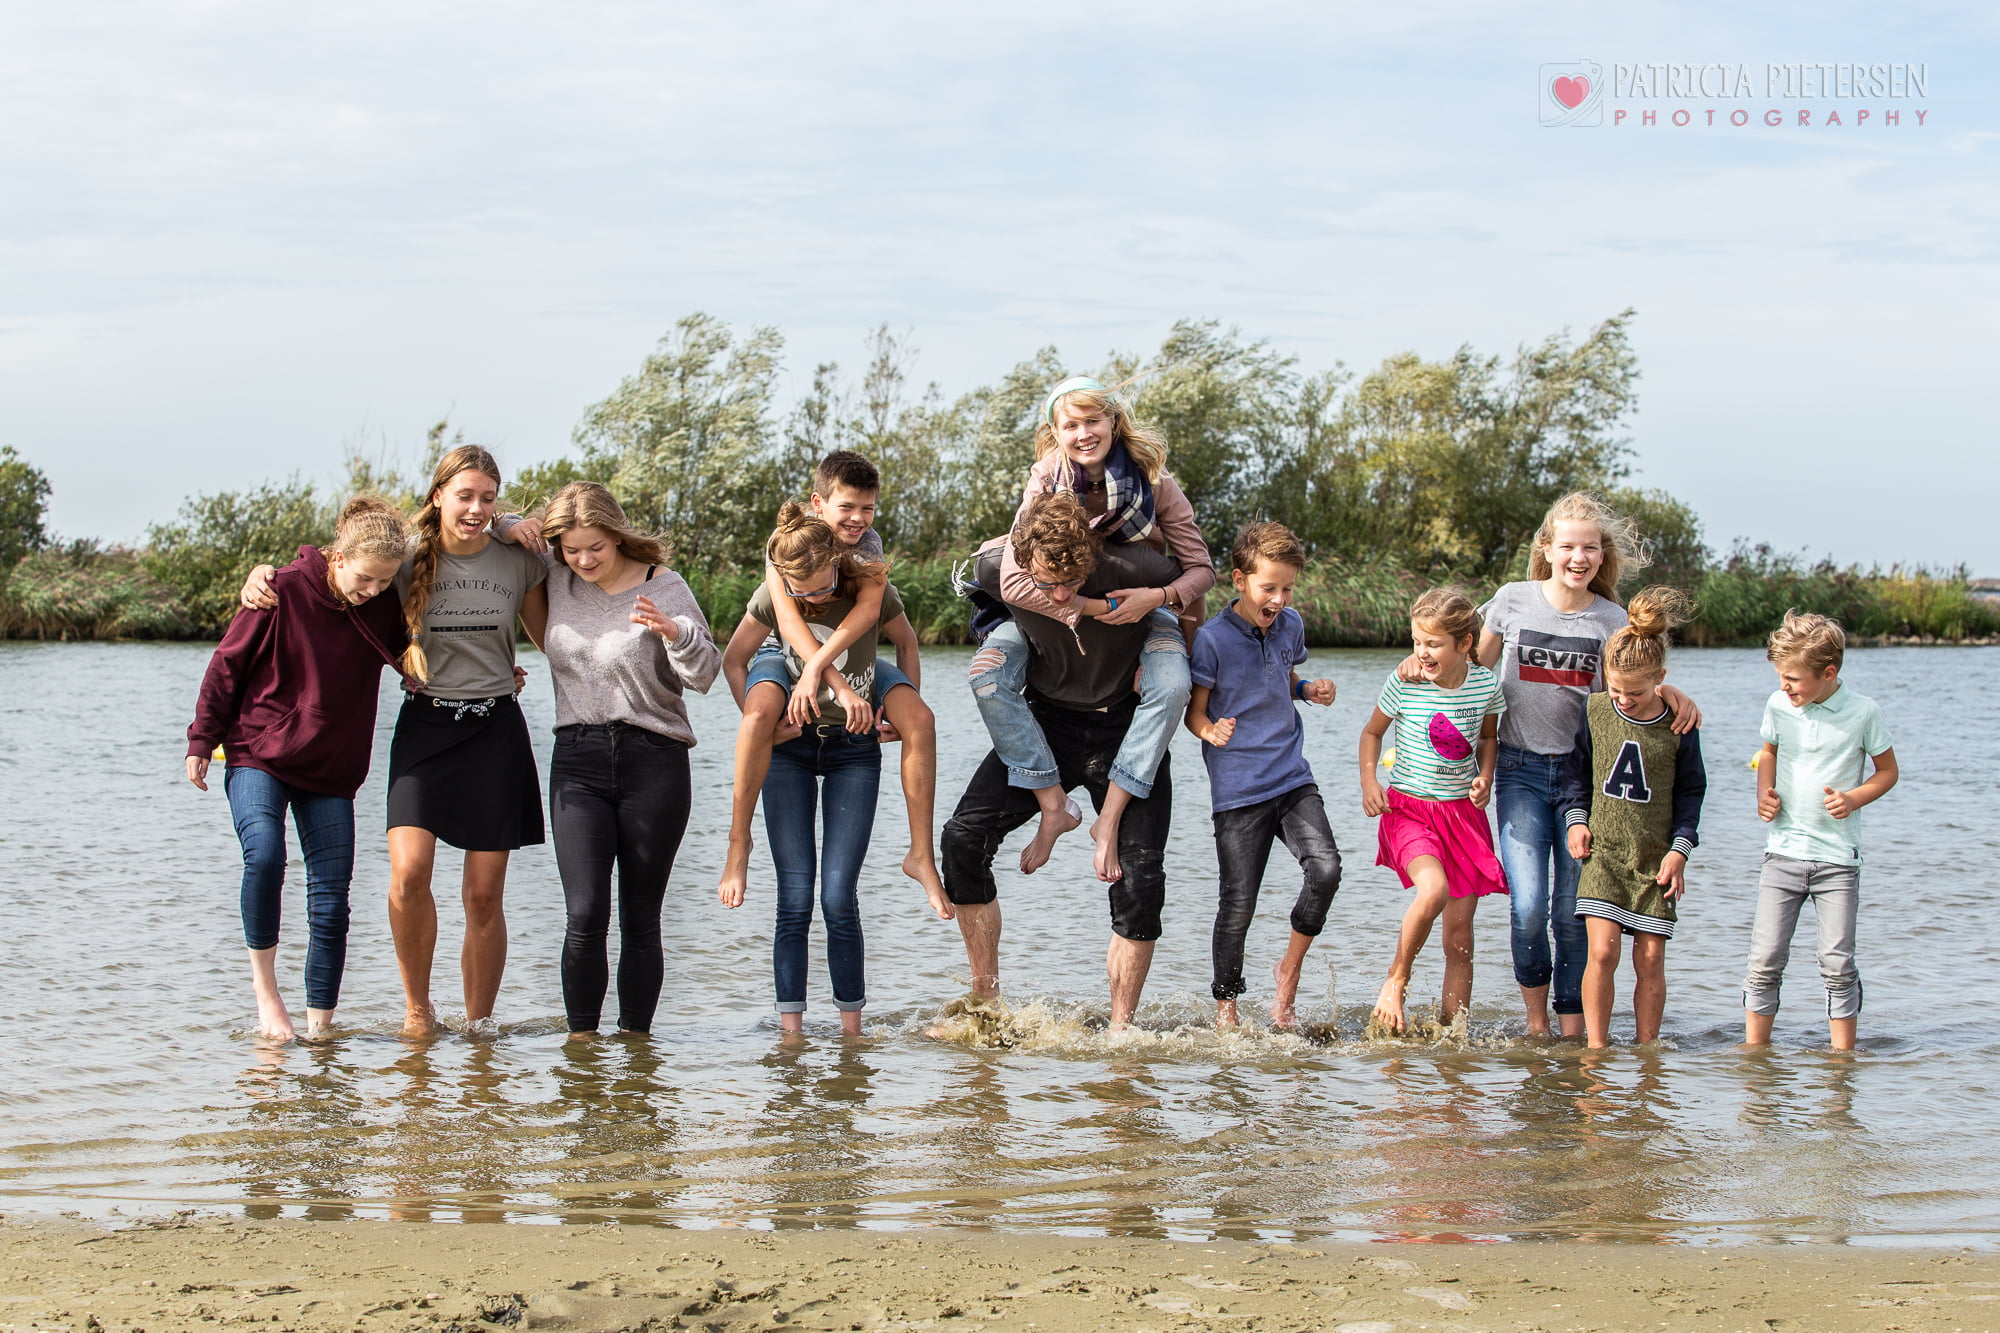 Wels Familiereportage Portretreportage Lelystad Houtribstrand Patricia Pietersen Photography (8)